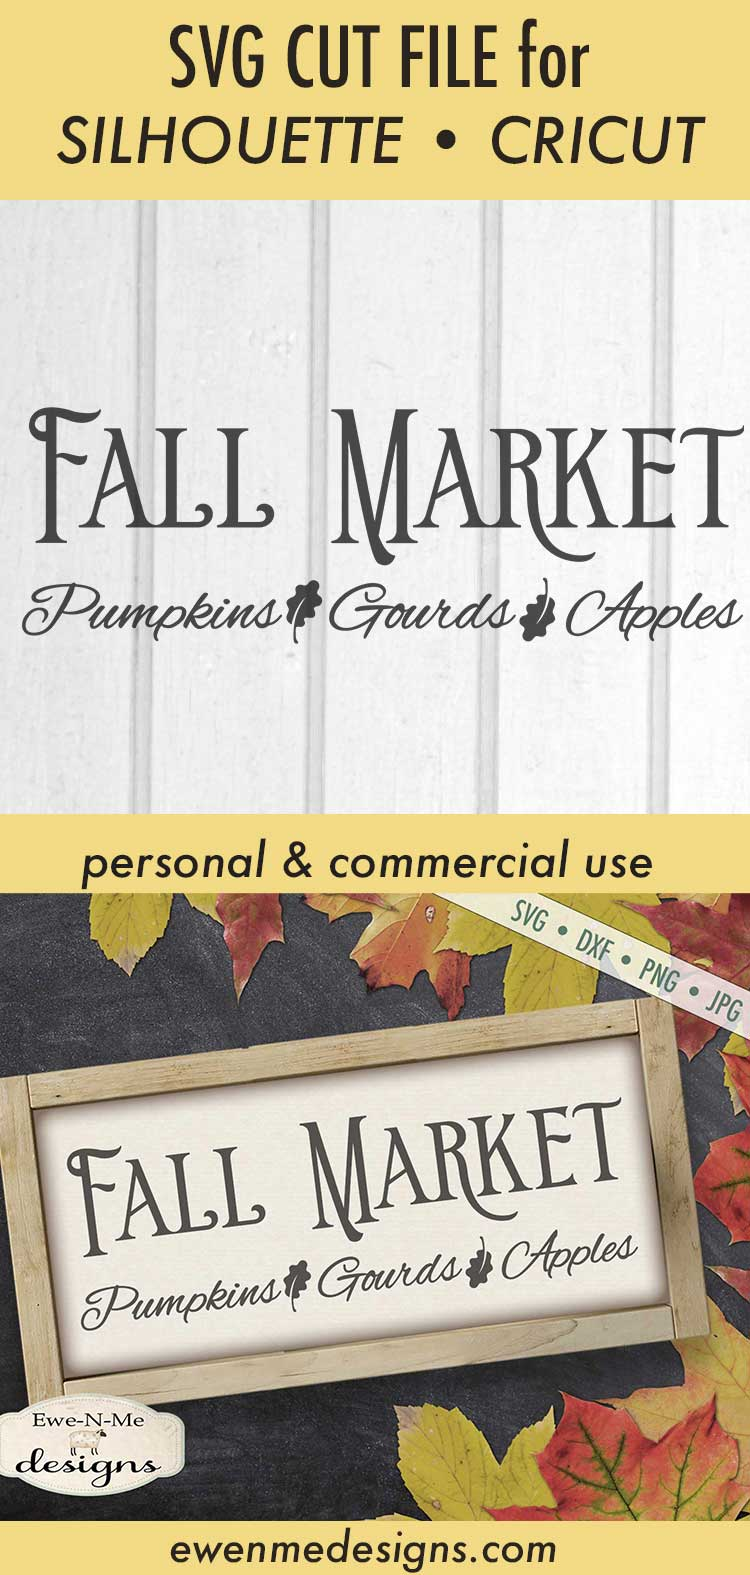 Fall Market - Pumpkins Gourds Apples - Autumn - SVG DXF example image 3